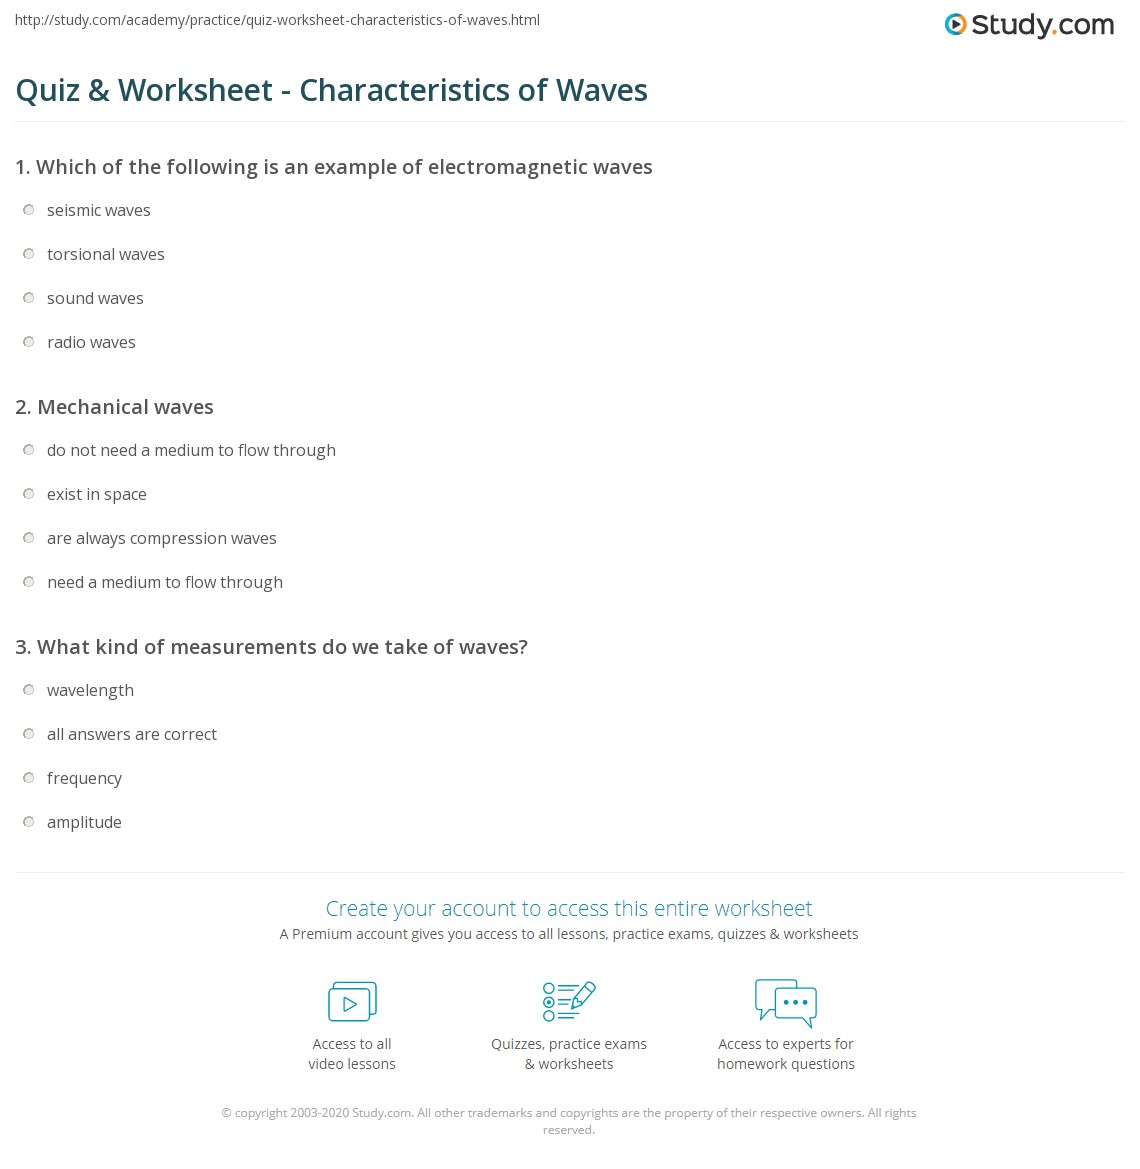 Quiz & Worksheet - Characteristics of Waves | Study com